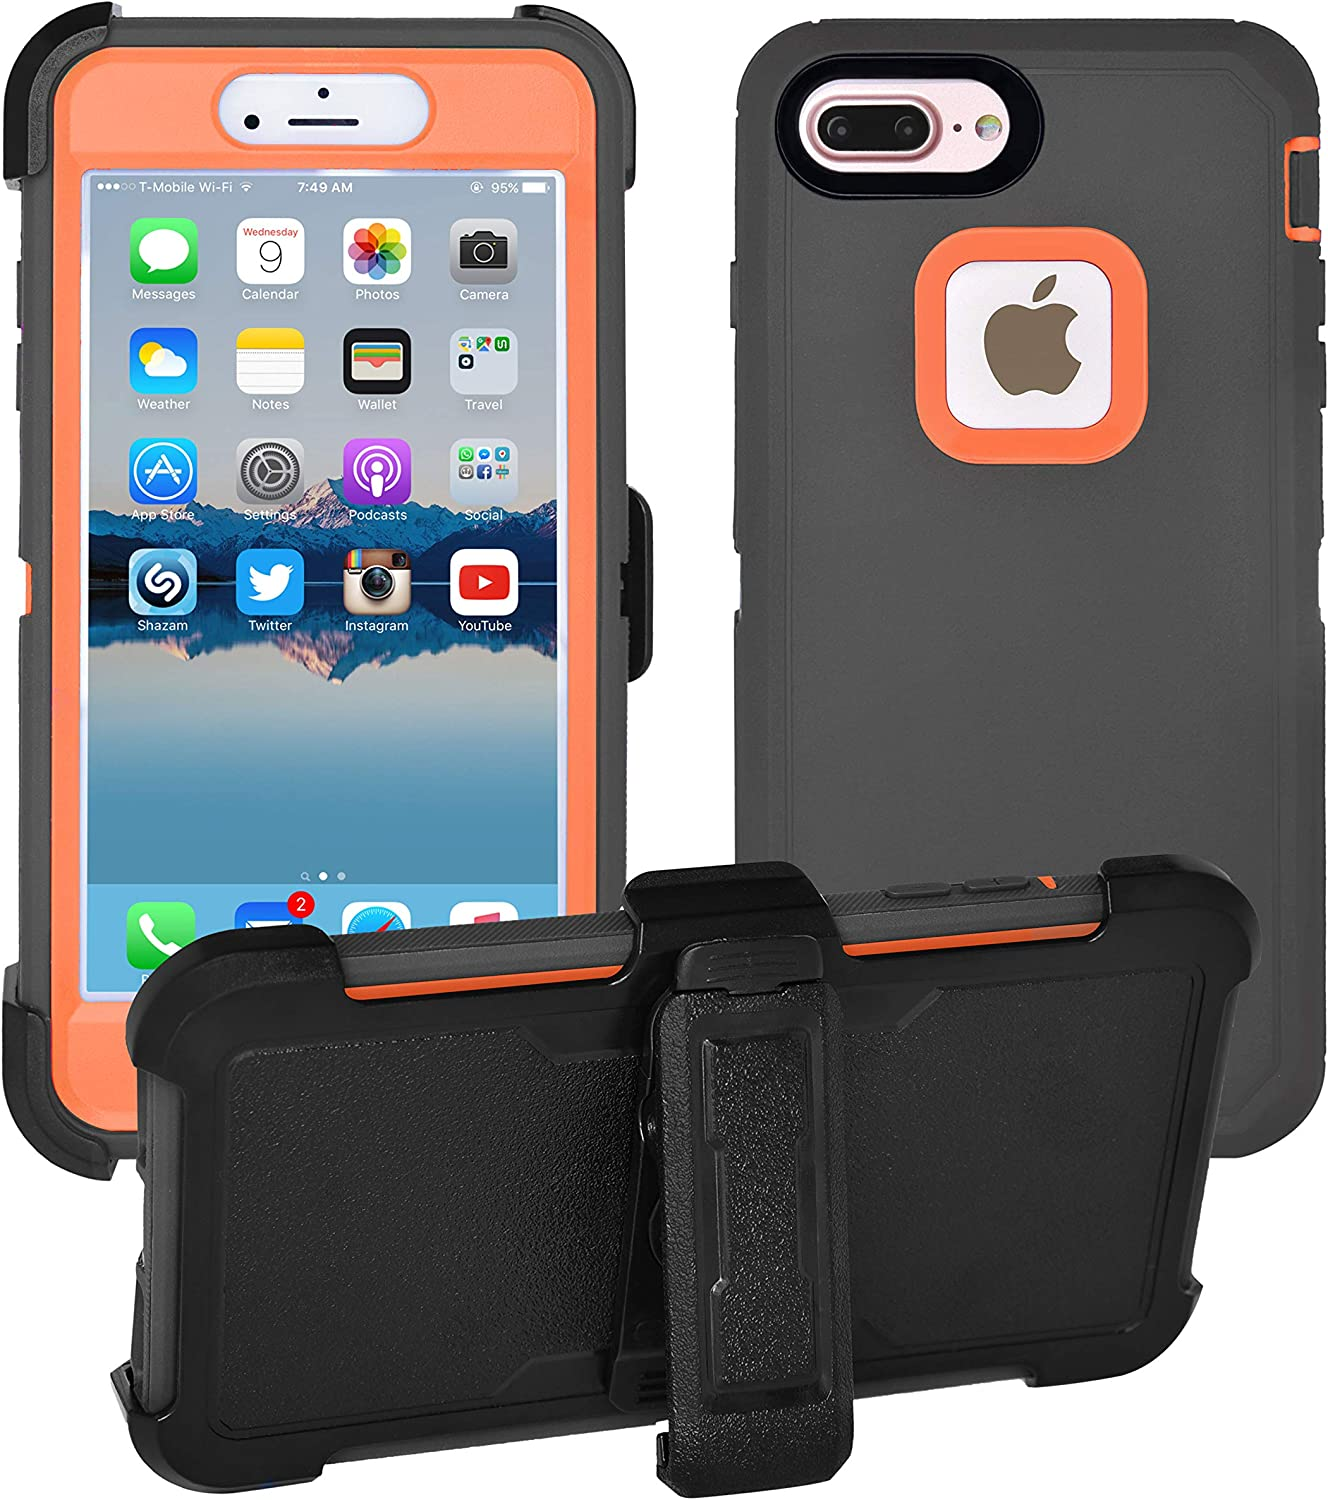 AlphaCell Cover Compatible with iPhone 8 Plus / 7 Plus / 6 Plus / 6s Plus | 2-in-1 Screen Protector Holster Case | Full Body Military Grade Protection with Carrying Belt Clip | Shock-Proof Protective